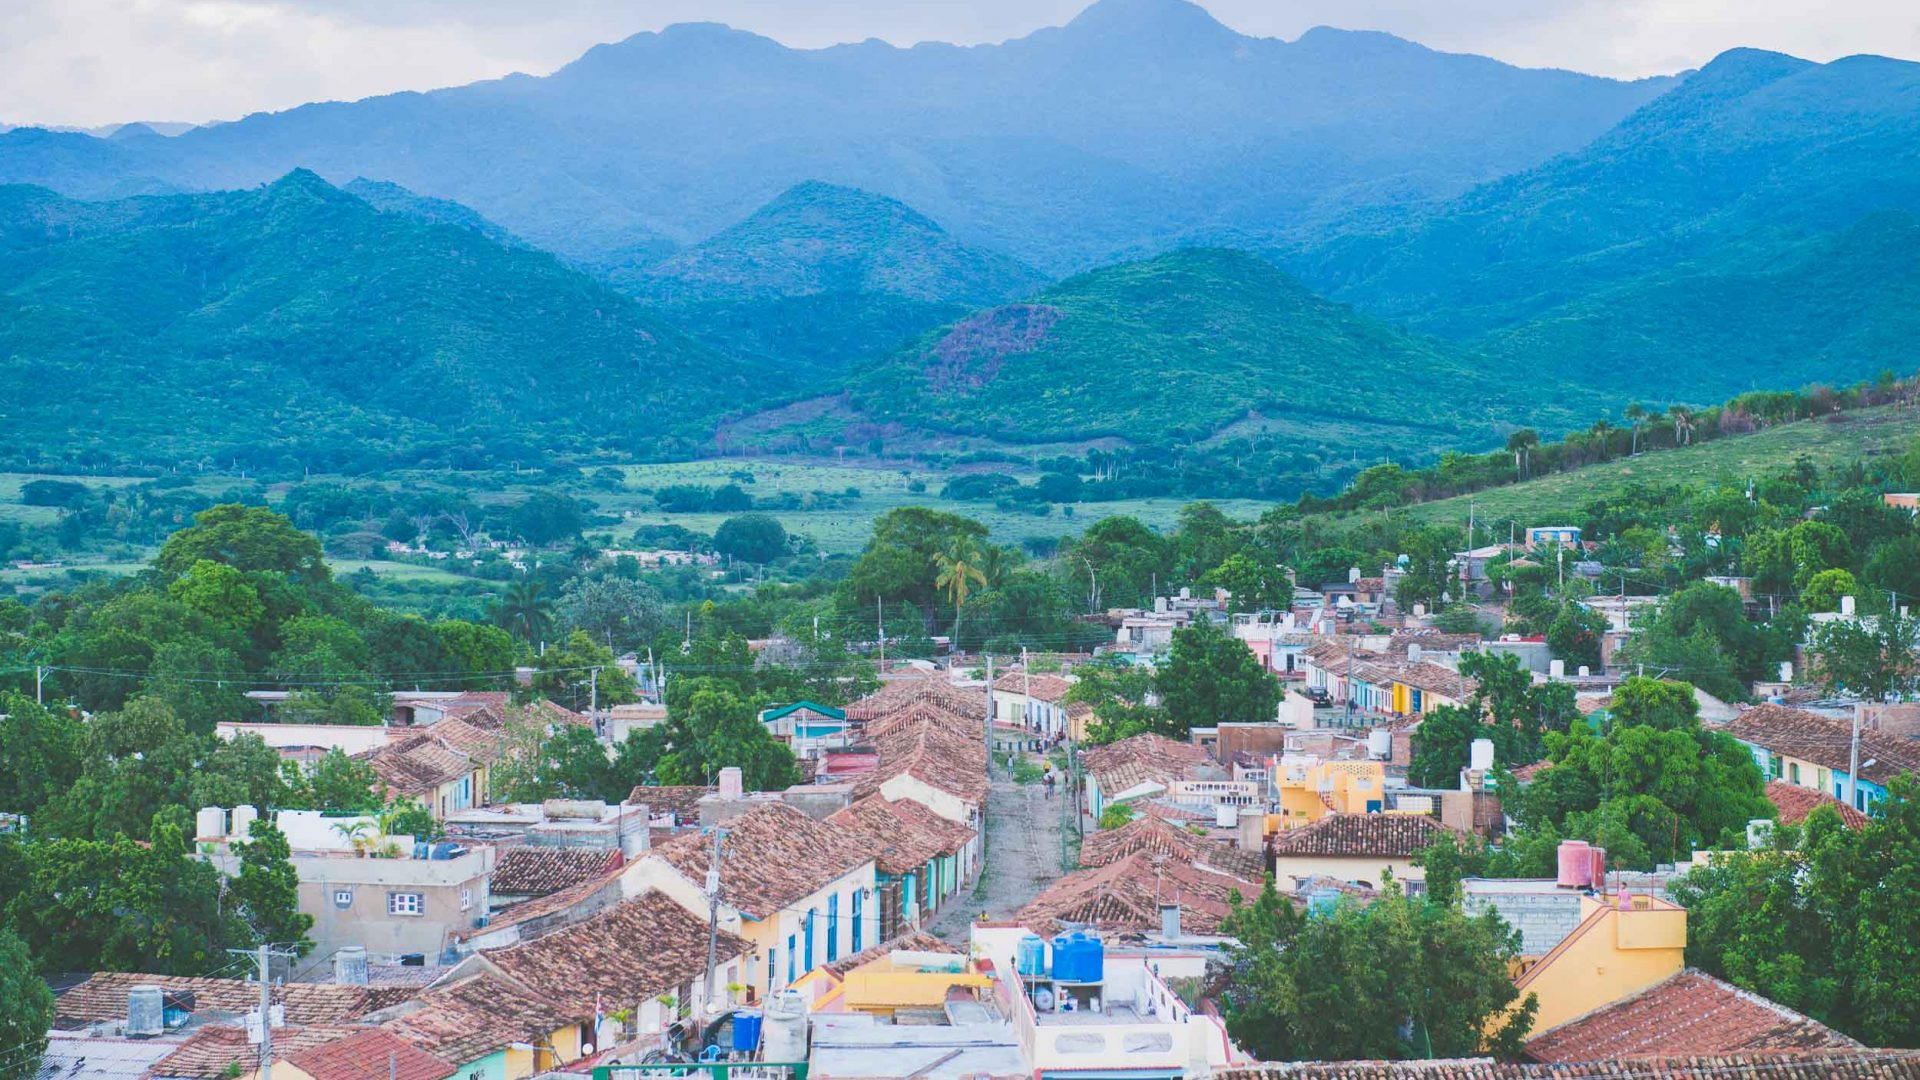 Looking out at Valle de los Ingenios from the town of Trinidad in Cuba.